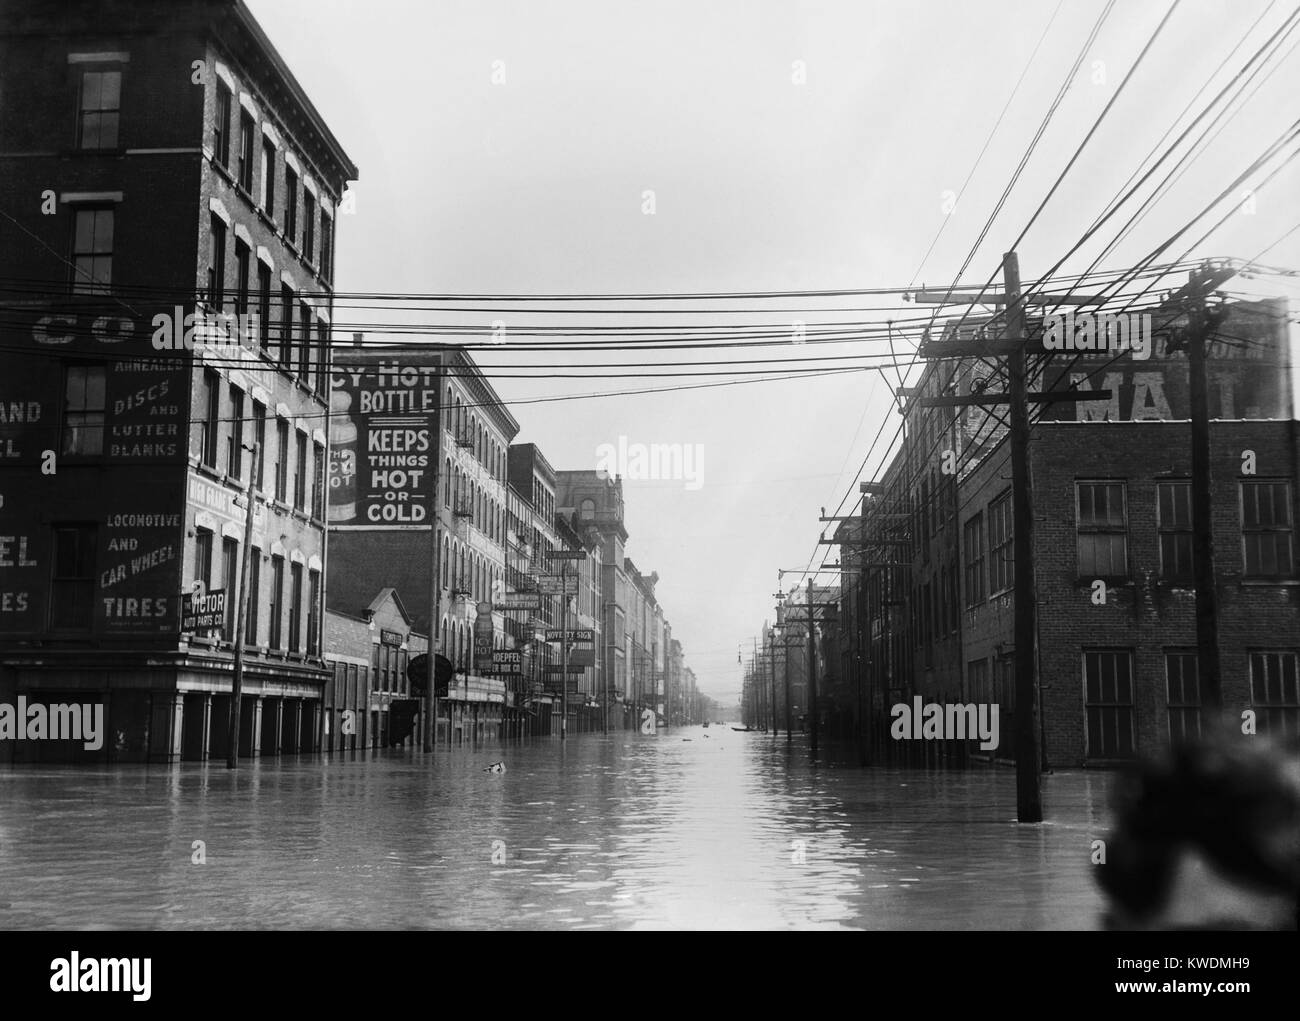 The Great Flood of 1913 was Ohios greatest weather disaster of the early 20th century. Photo shows flooded warehouses - Stock Image